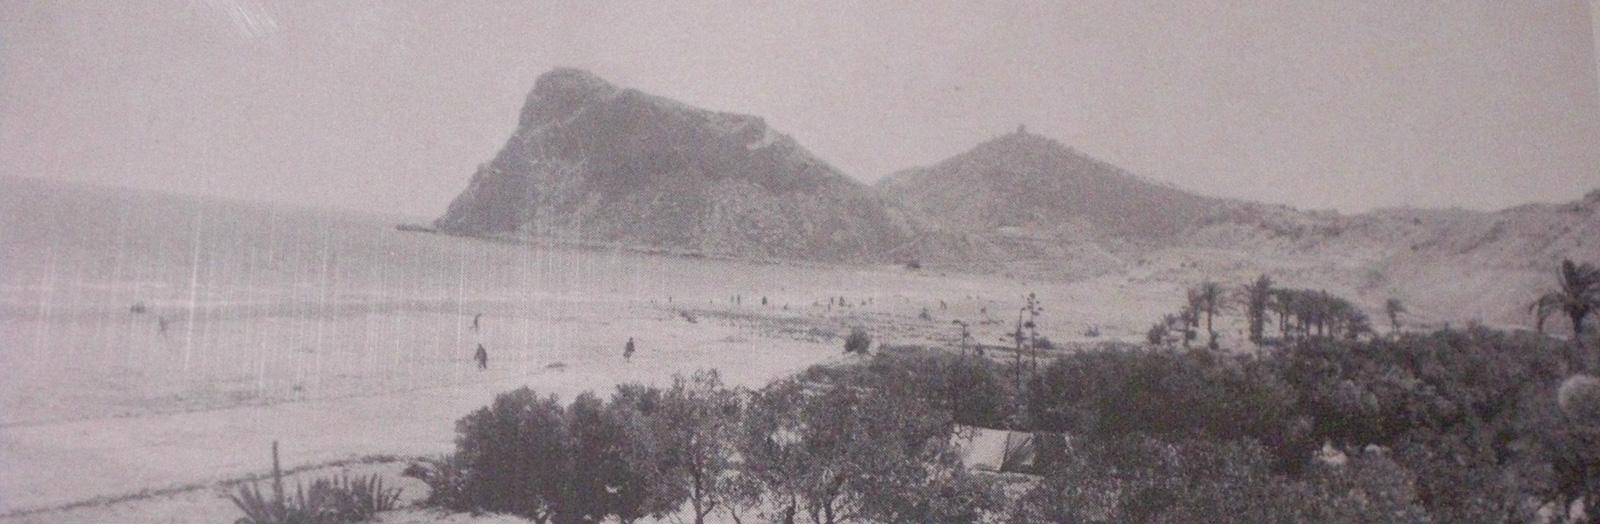 In this photo we can see La Cala as it was on the first years of the 50s. Back then, some people used to camp here.